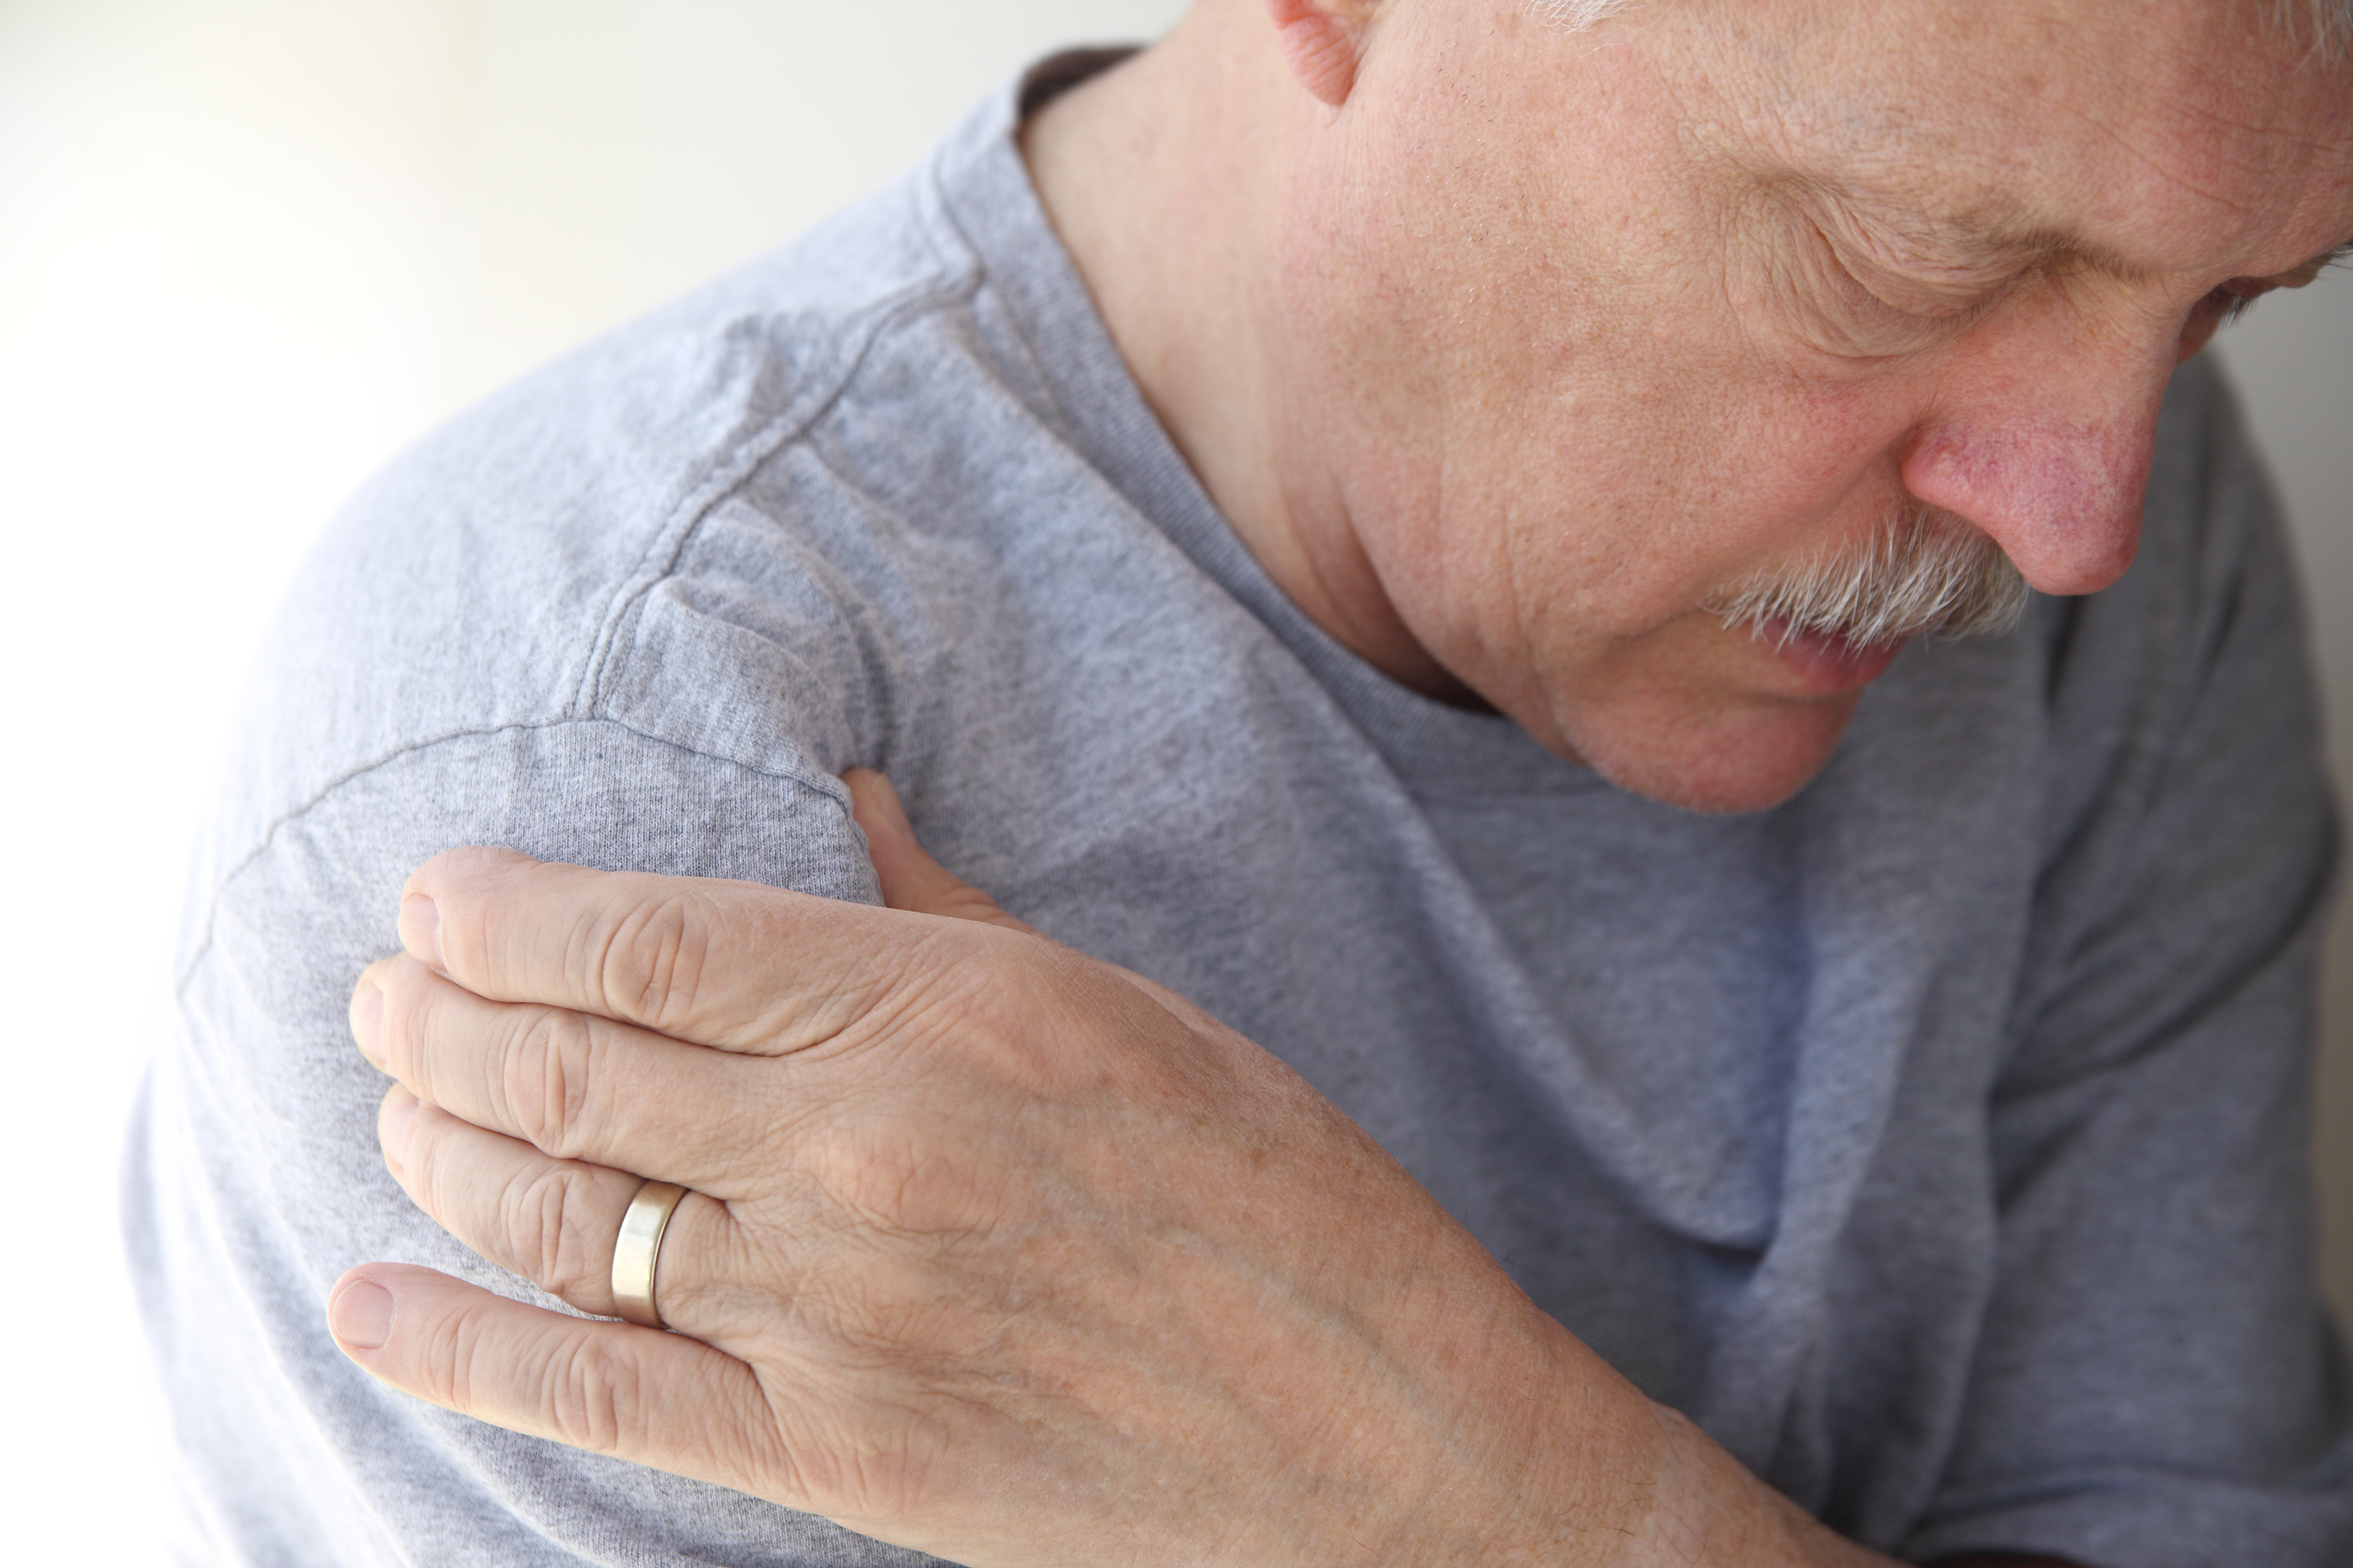 What is Rotator Cuff Injury? Feel pain when rotating arm or during any overhead activity, it could be rotator cuff injury. See best shoulder pain doctor at Pain Treatment Specialist who can help you treating pain.